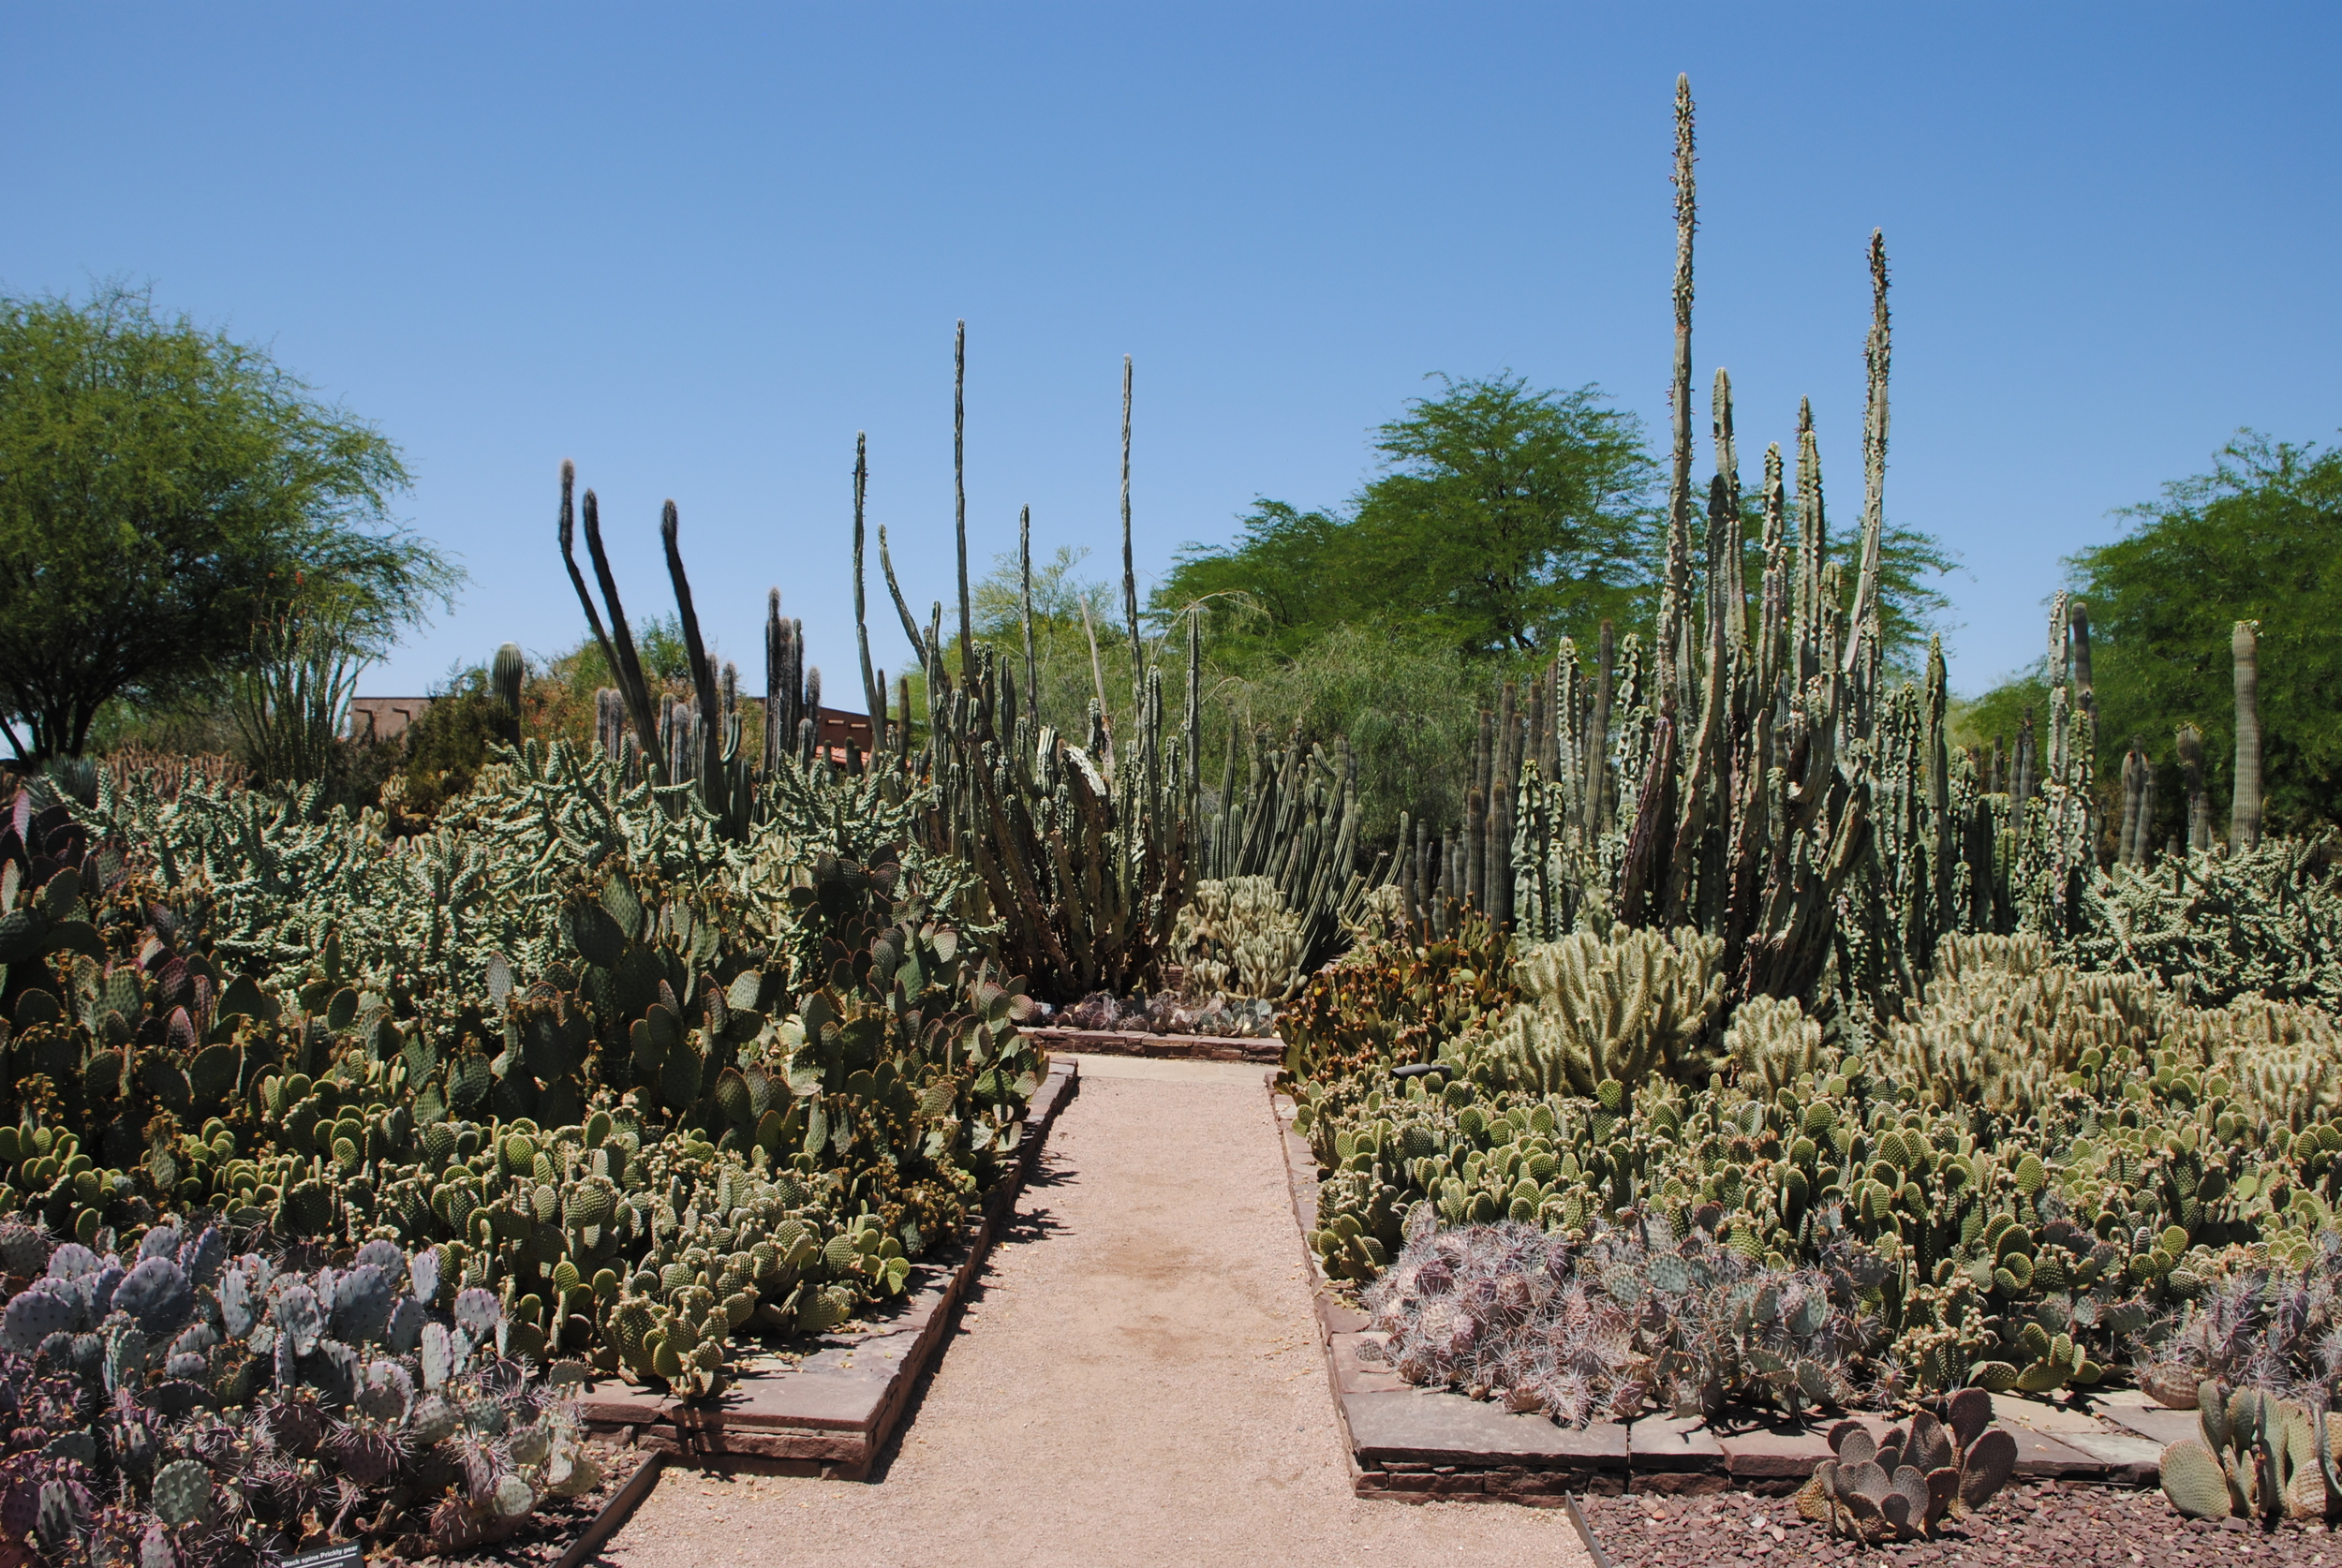 The cacti collection is worth a trek to visit.